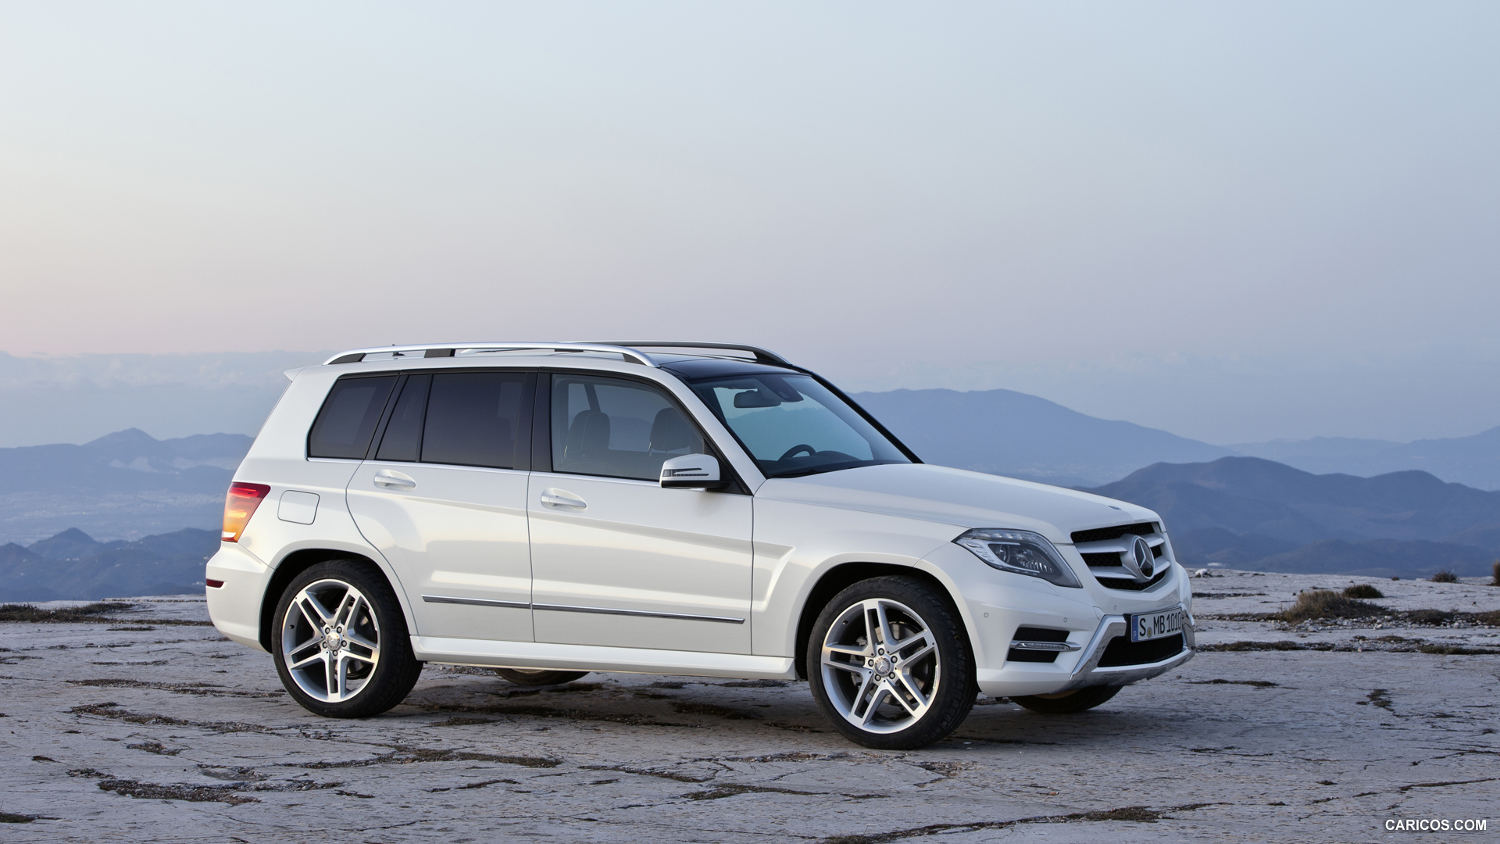 Comparison mercedes benz glk class glk350 vs for Mercedes benz average price